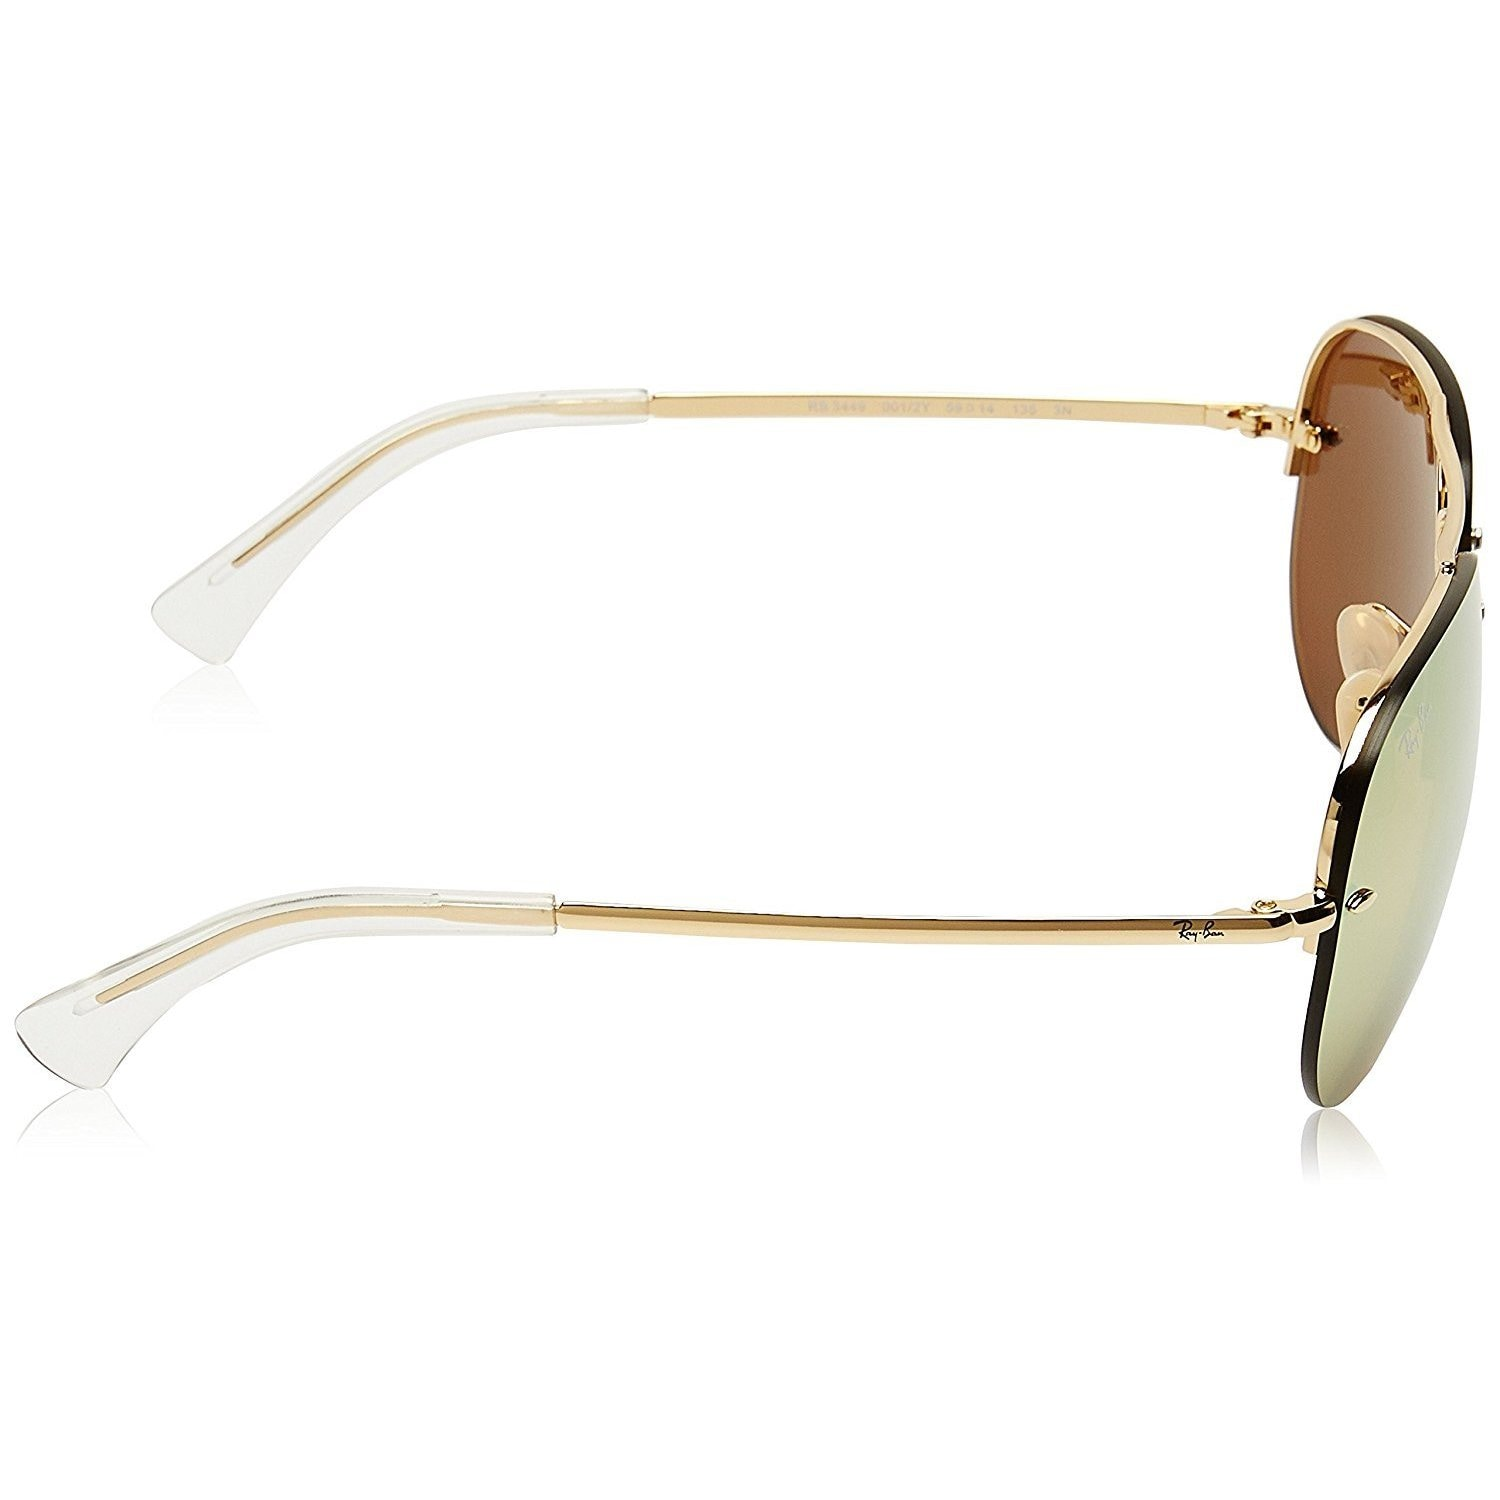 12f1e9b8621b5 Shop Ray-Ban RB3449 001 2Y Unisex Gold Frame Copper Mirror Lens Sunglasses  - Free Shipping Today - Overstock - 15002988